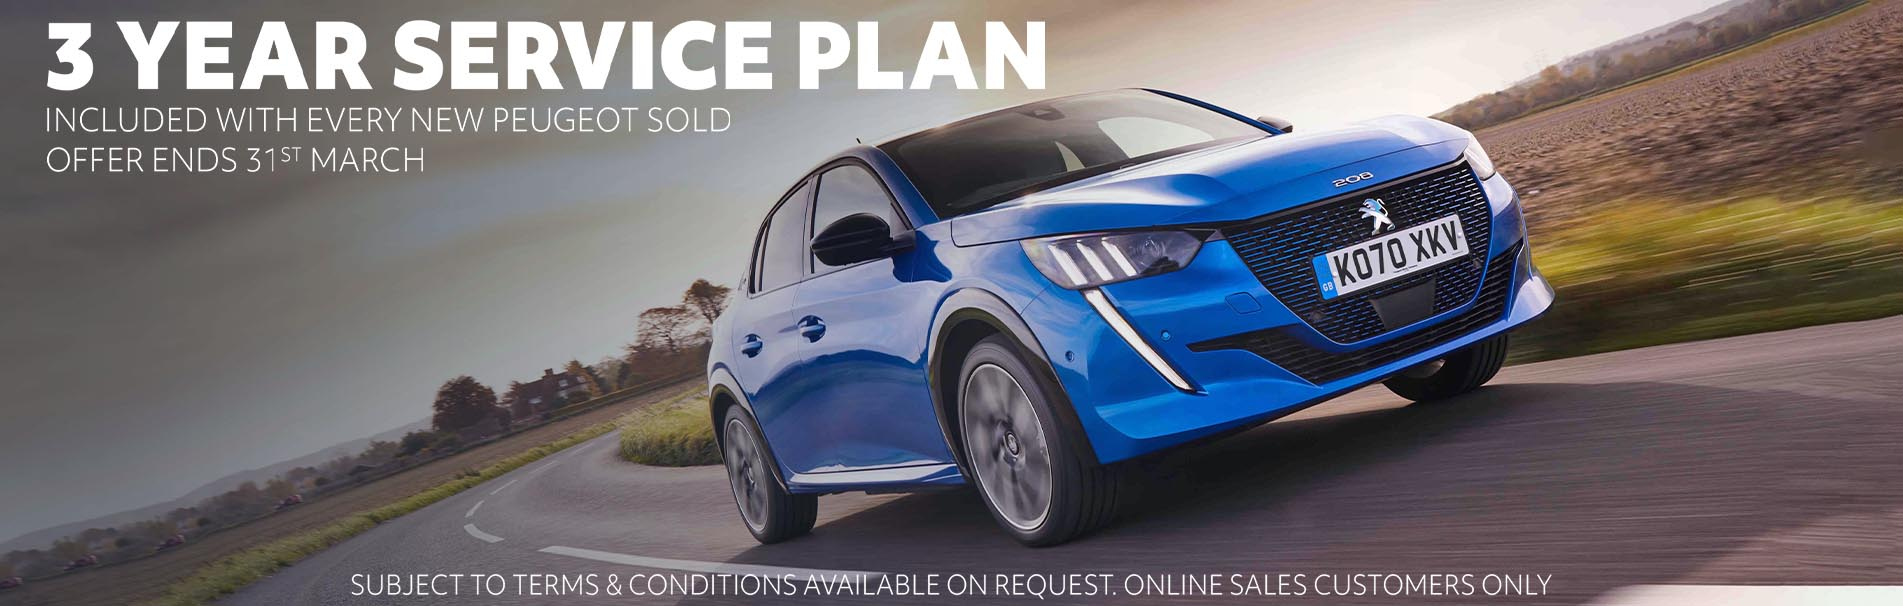 peugeot-3-year-service-plan-included-with-every-new-cars-sli